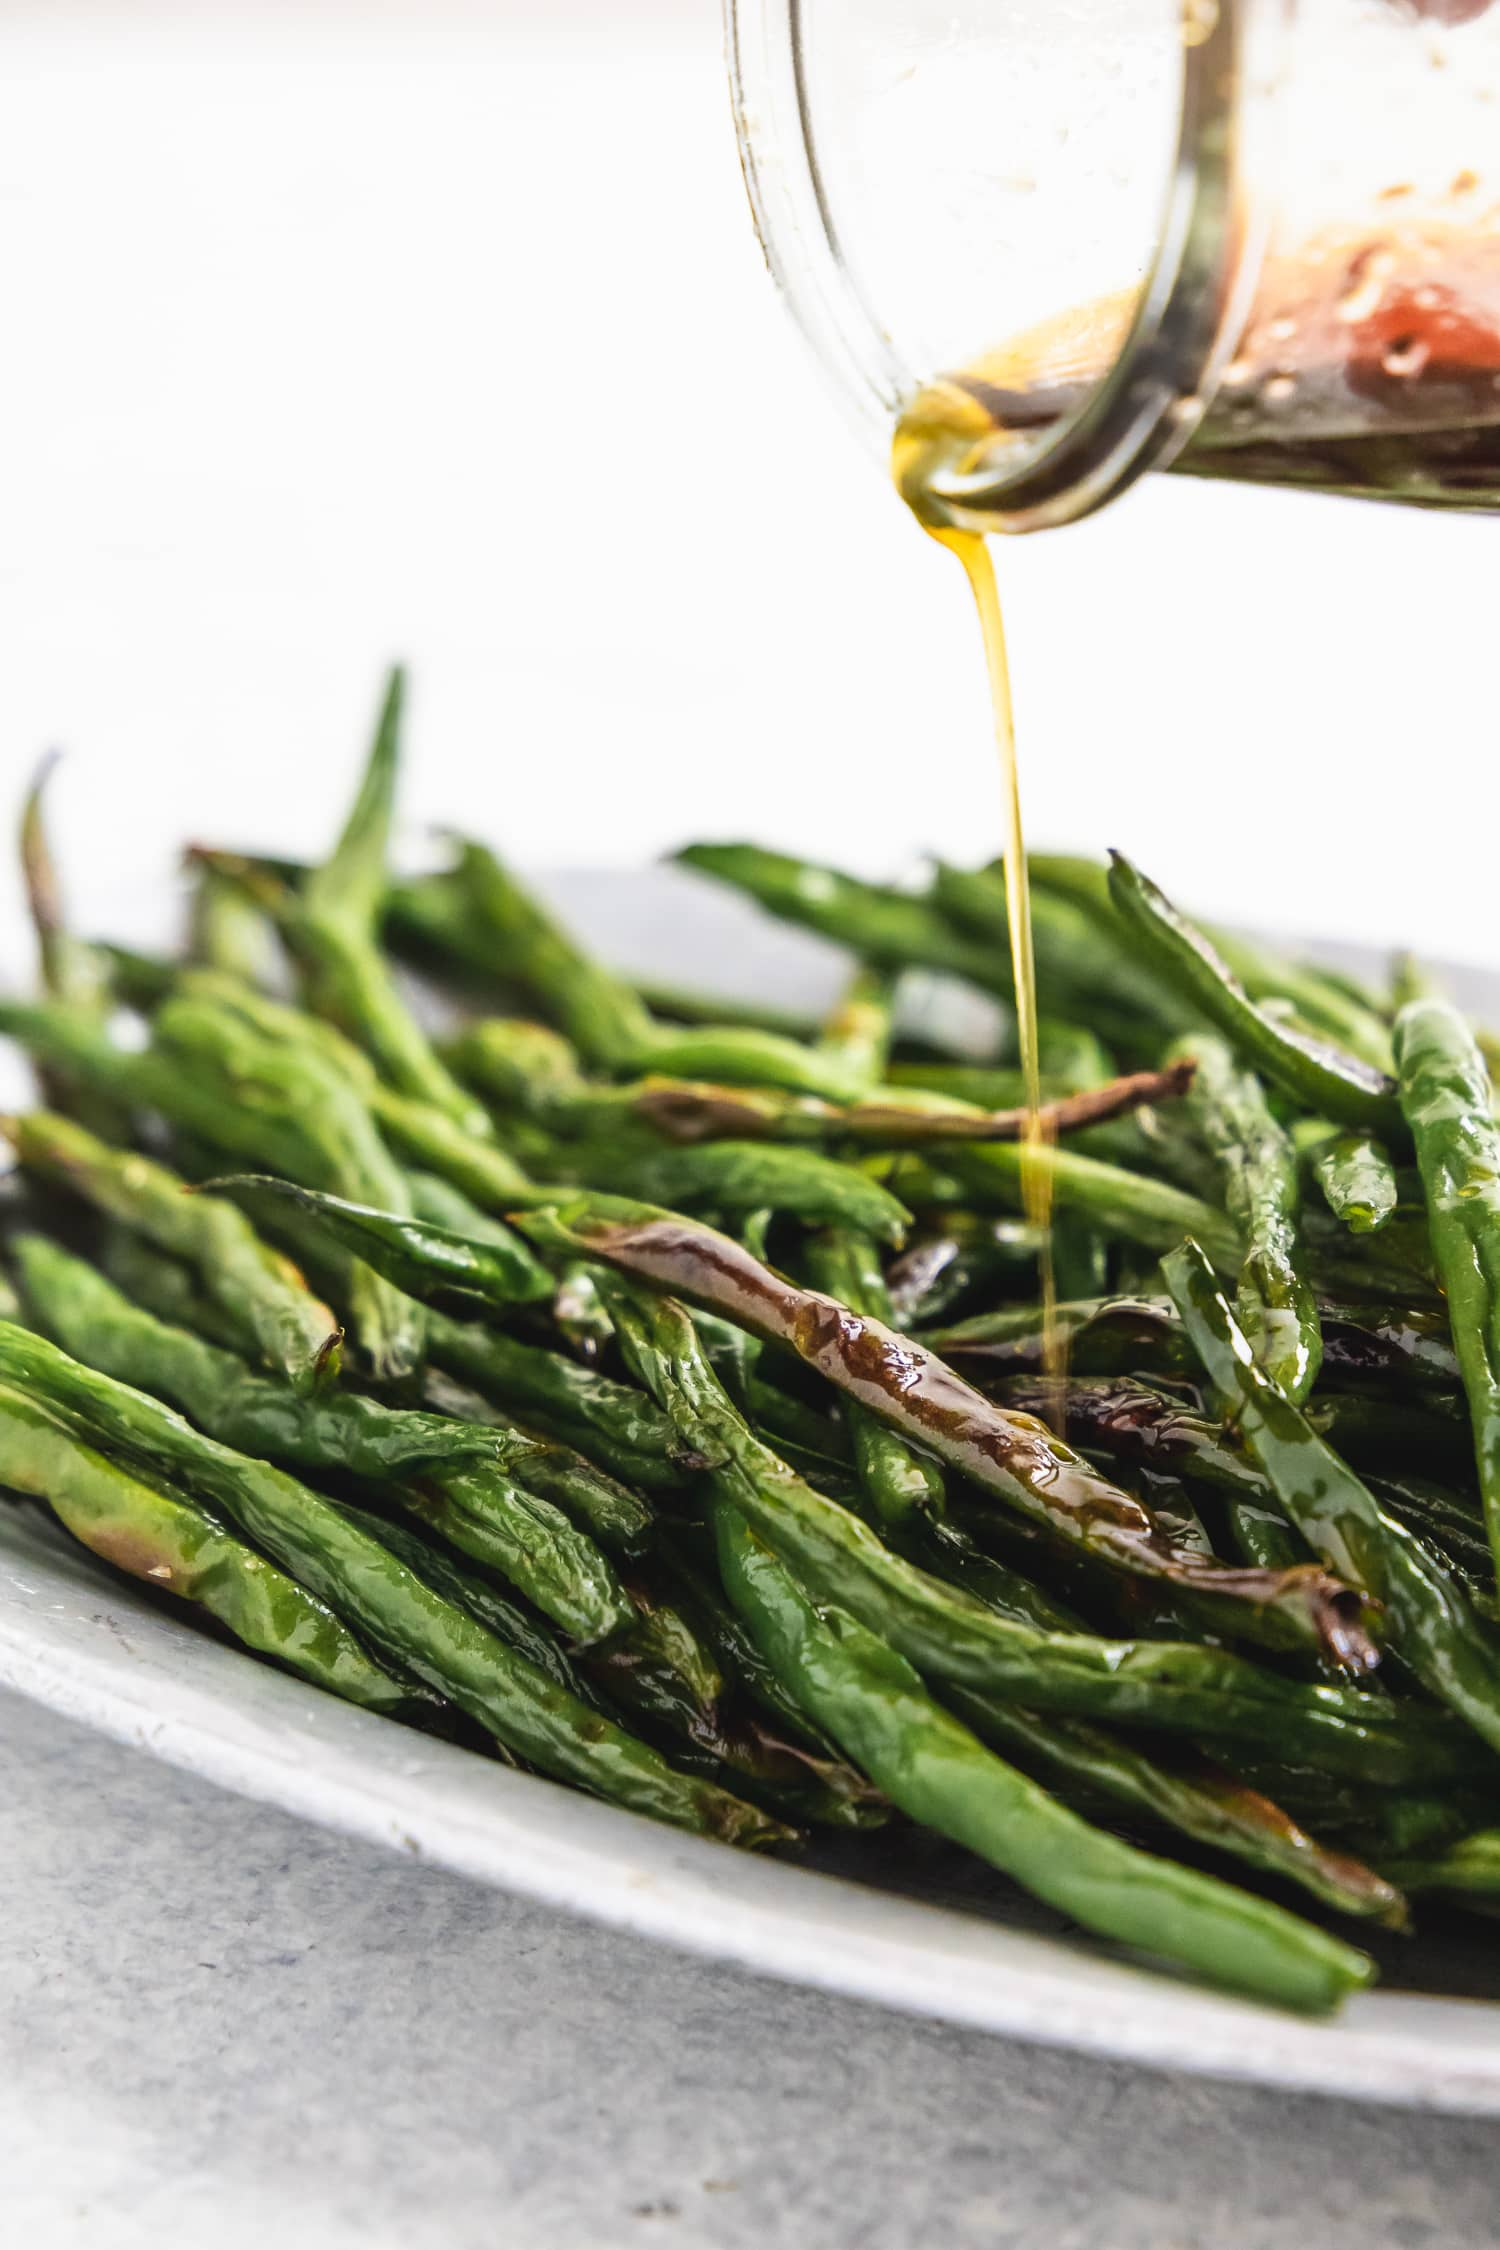 maple soy sauce pouring onto charred green beans